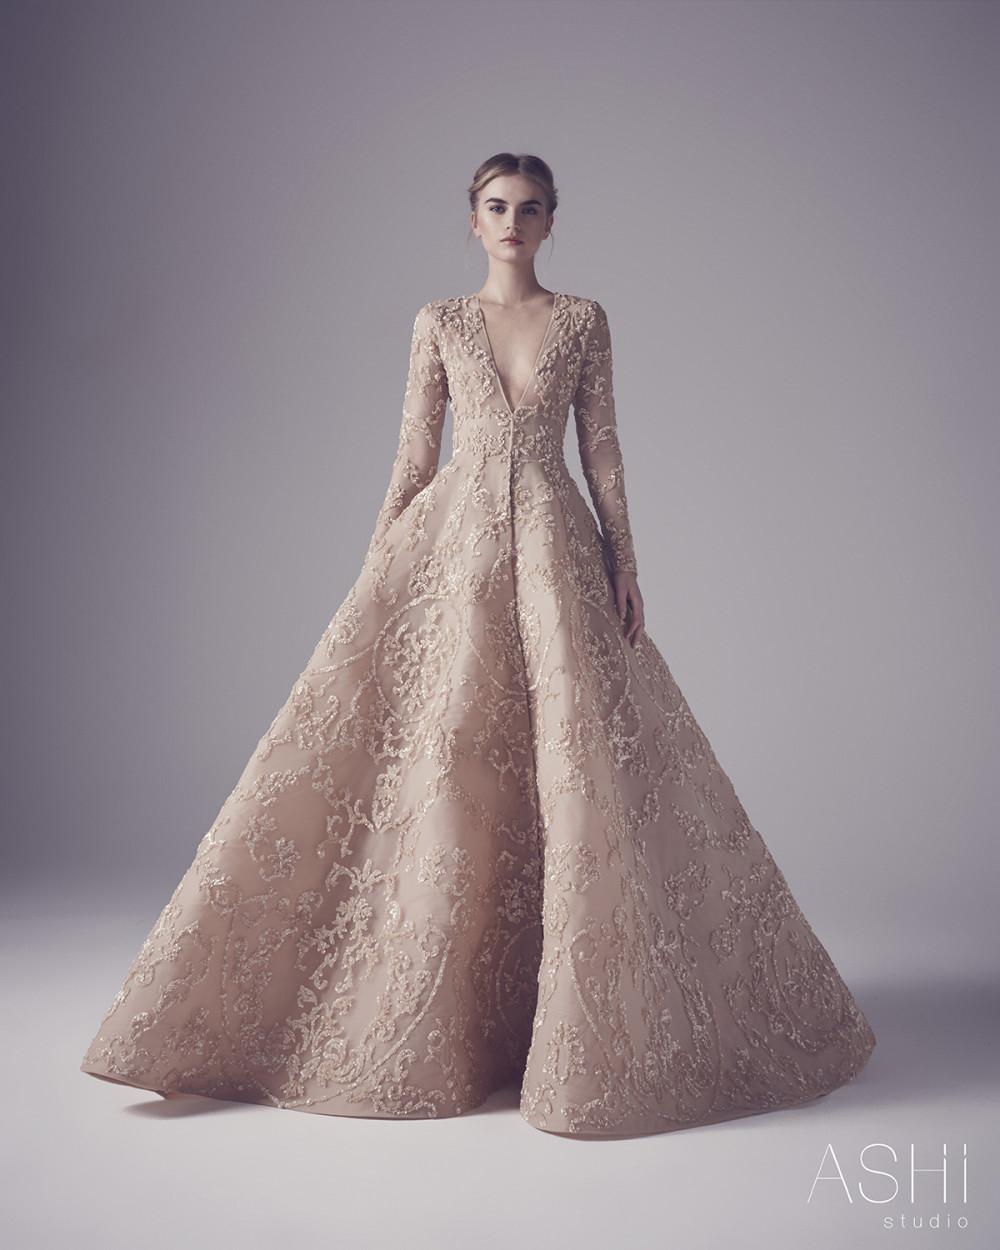 Ashi Studio_Spring Summer 2016 Couture Collection_BellaNaija Weddings_Ashi_22-004_large